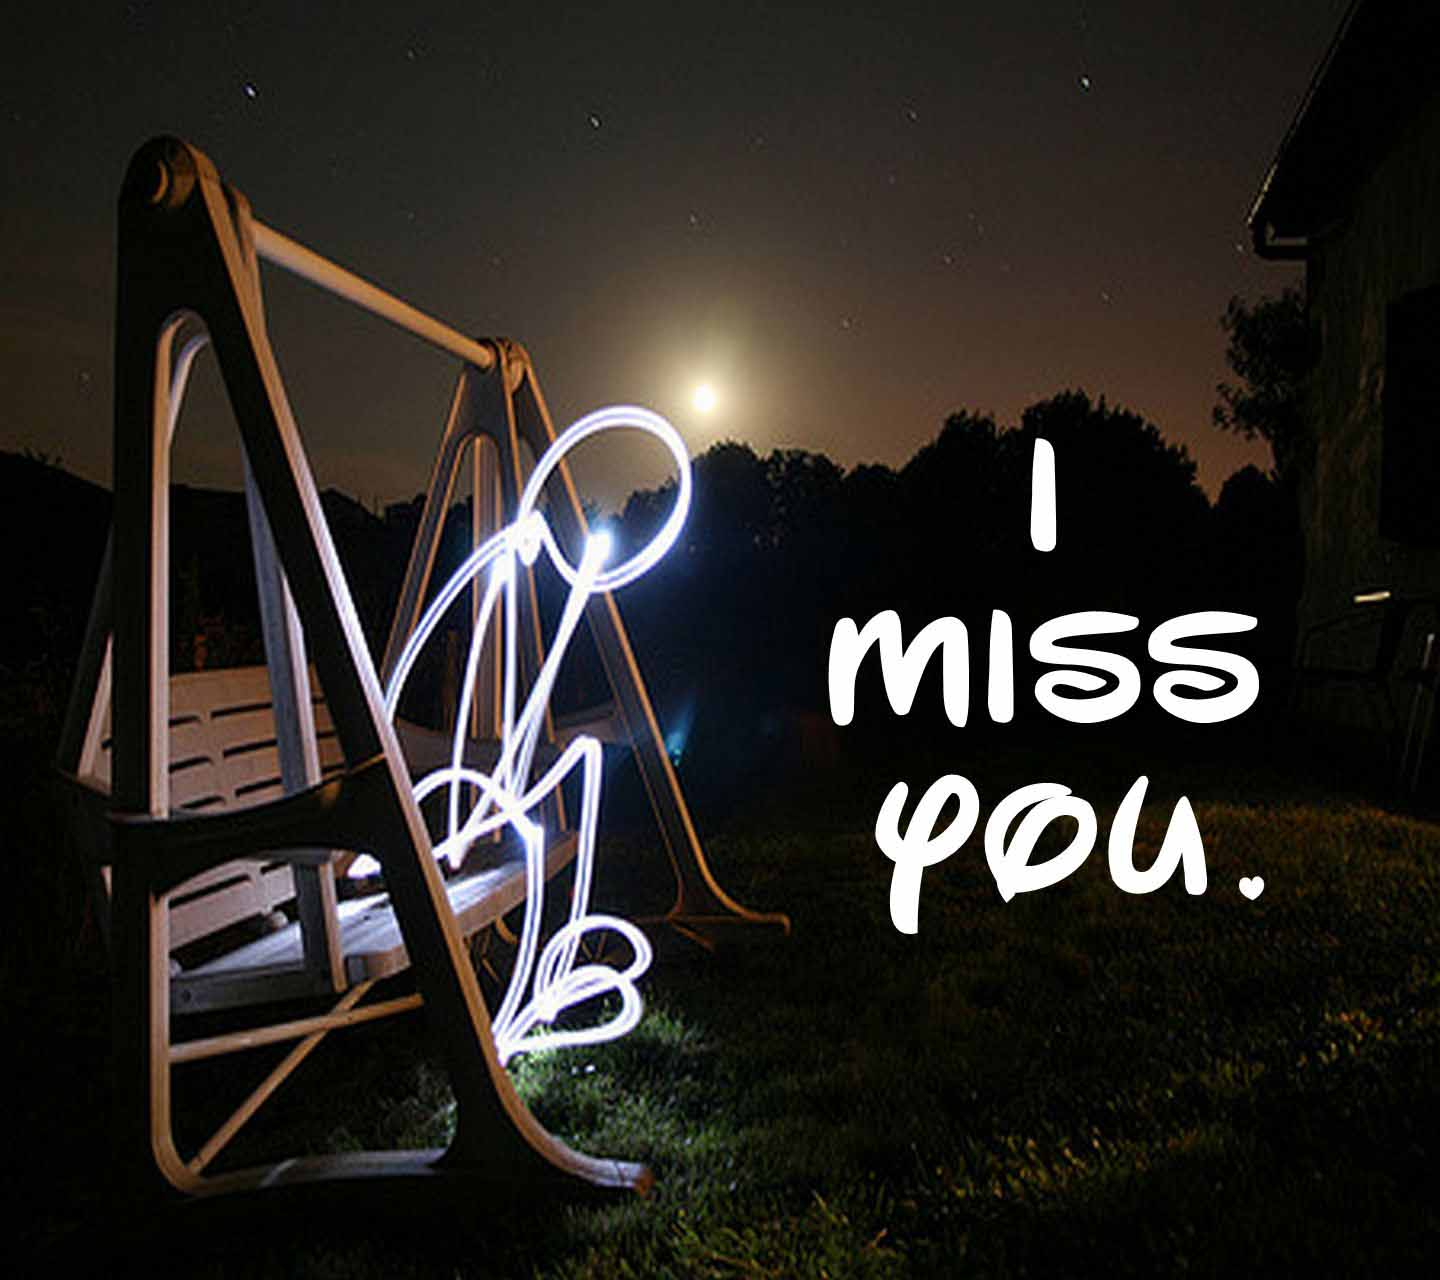 Wallpaper download i miss you - I Miss You Latest Hd Wallpapers Free Download Hd Free Wallpapers